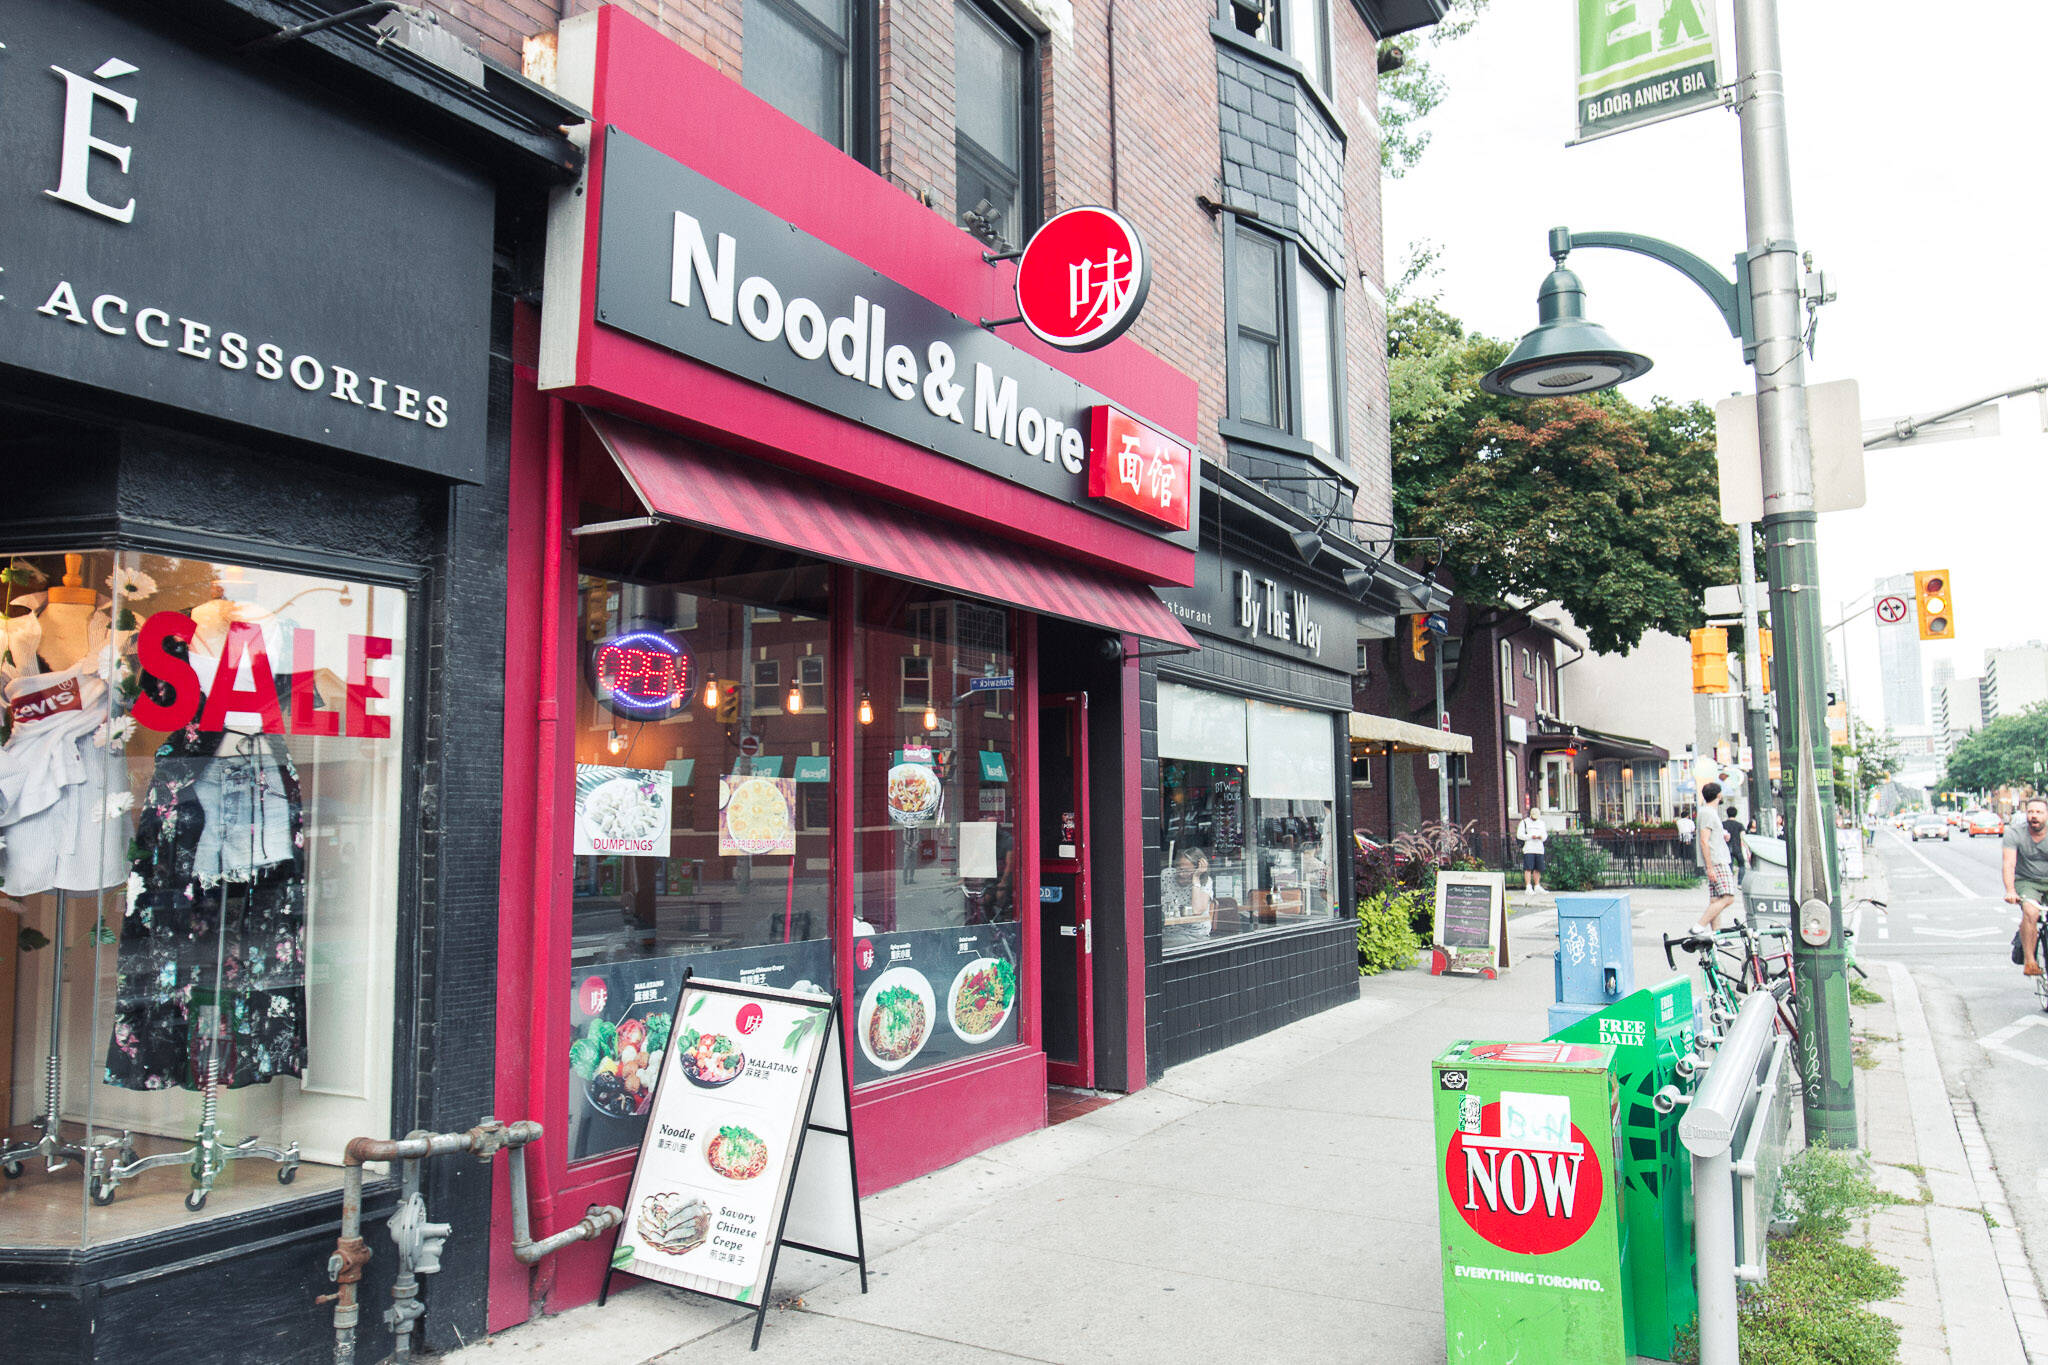 Noodle and More Toronto